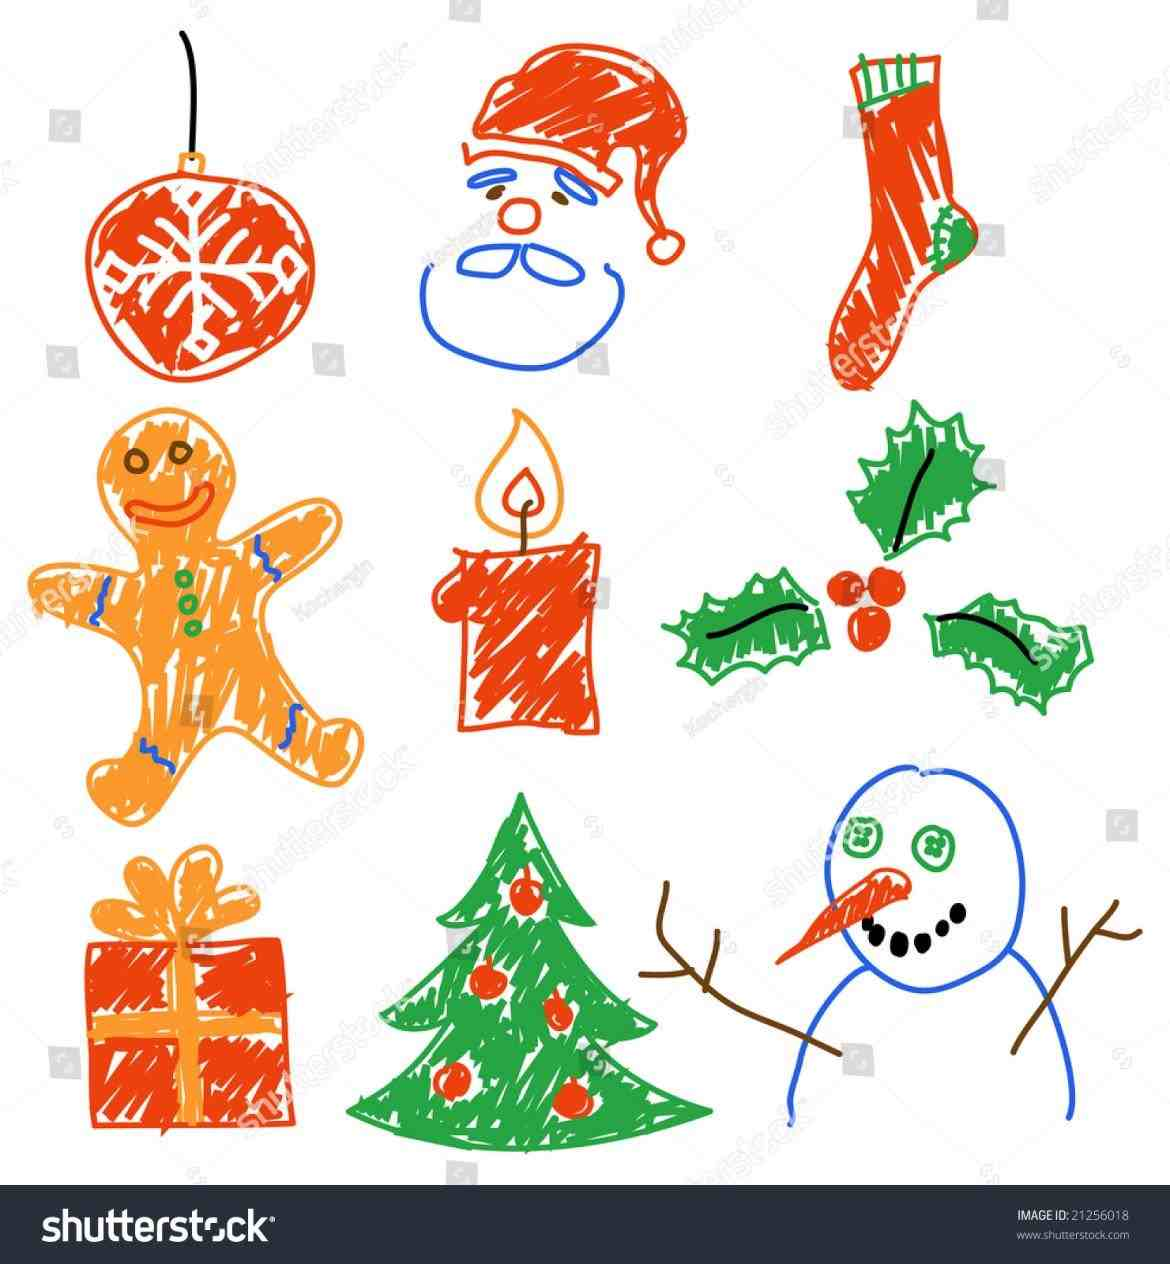 1170x1264 The Images Collection Of Drawn Christmas Decoration Drawing